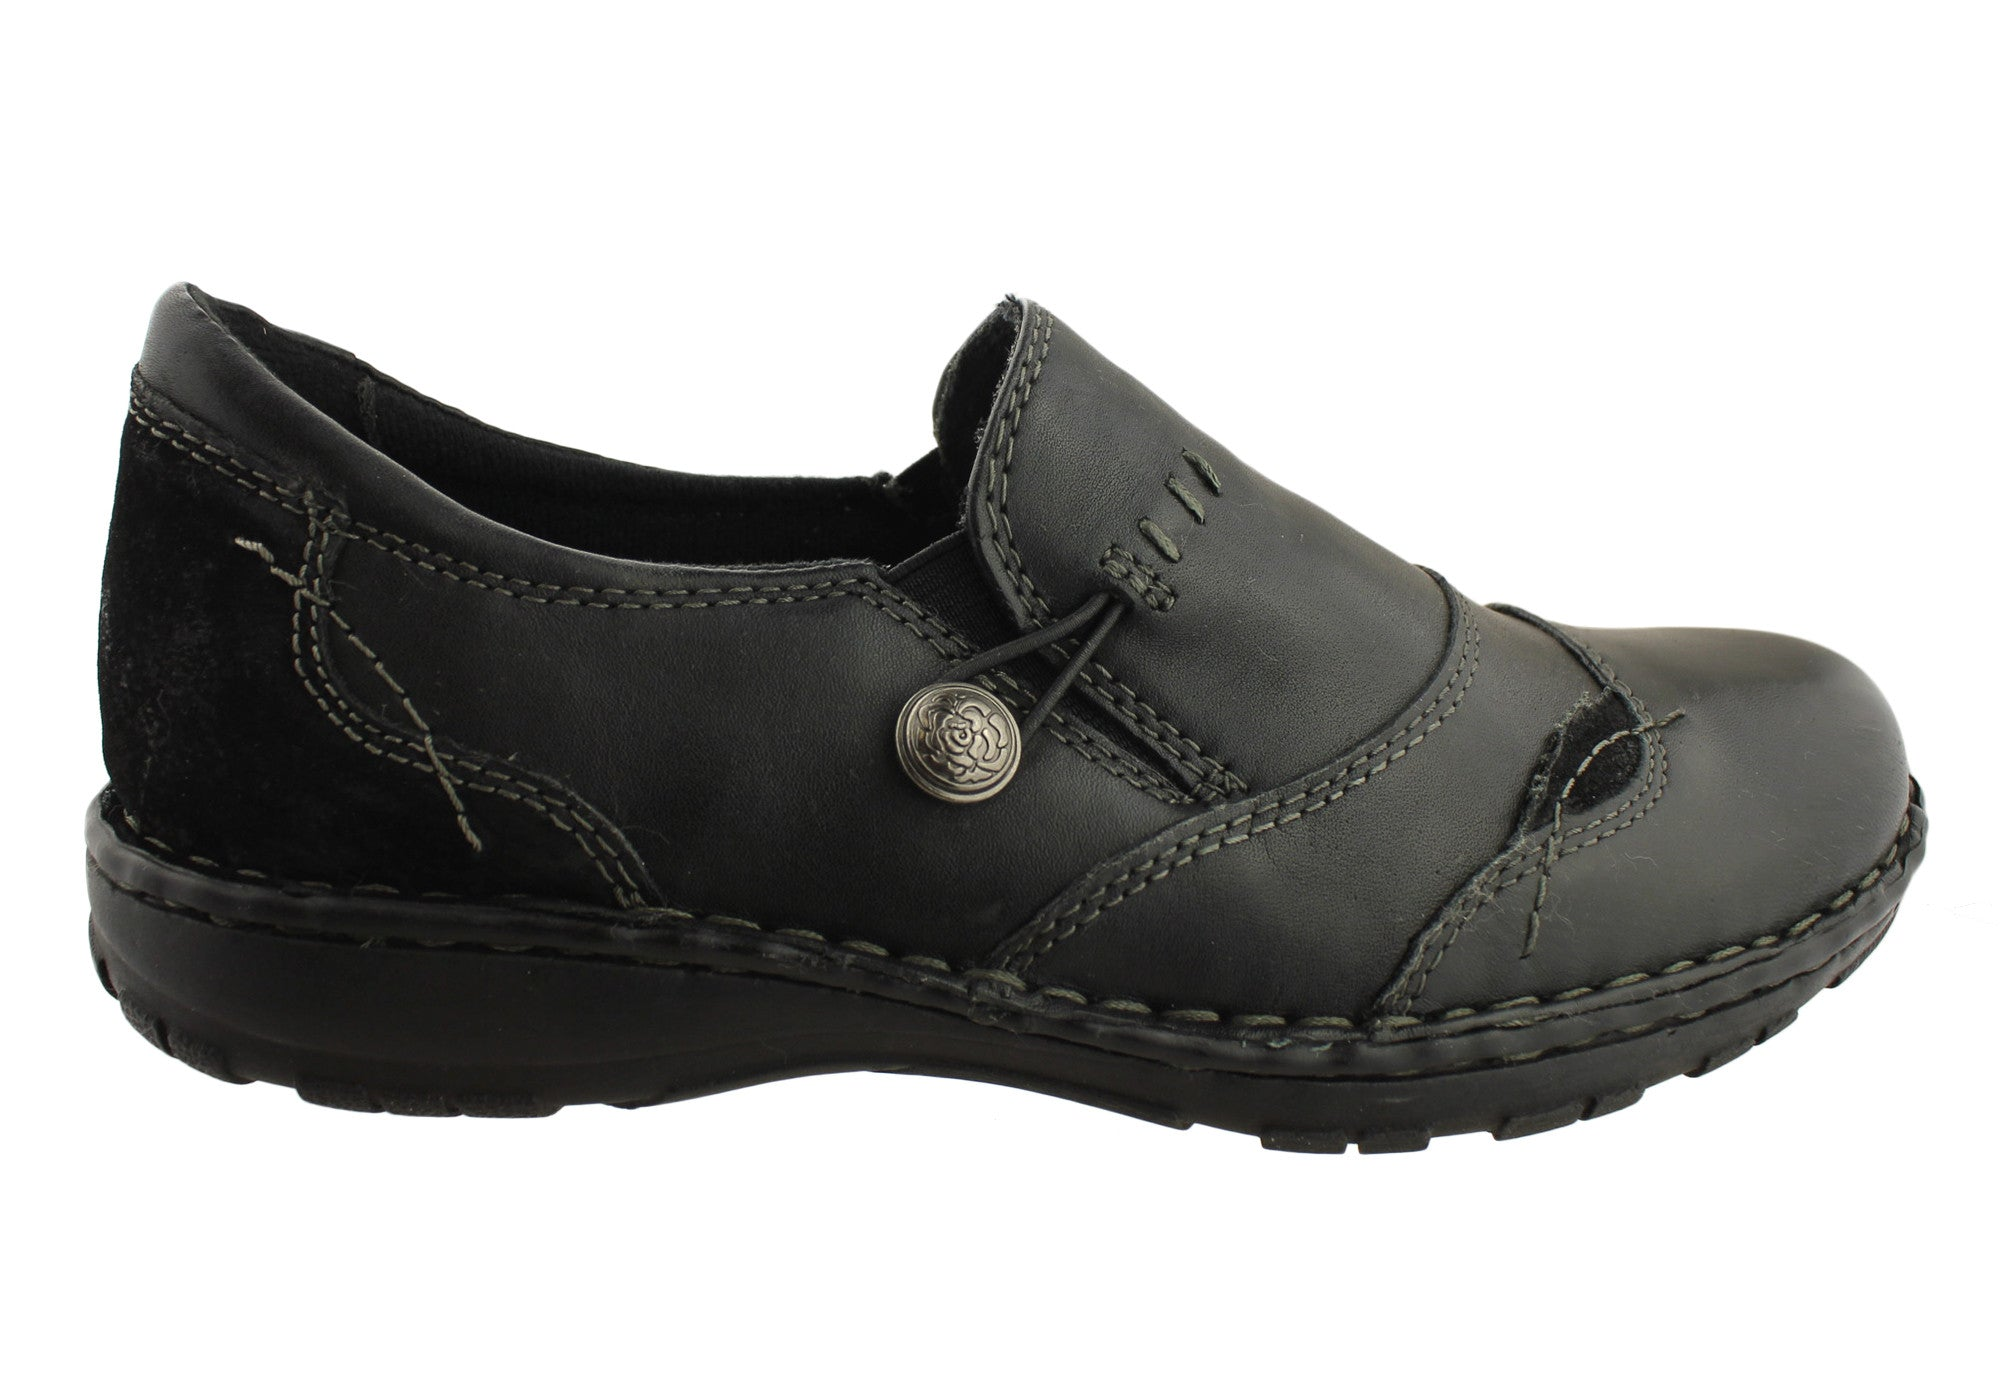 Planet Shoes Linne Womens Leather Comfort Shoes